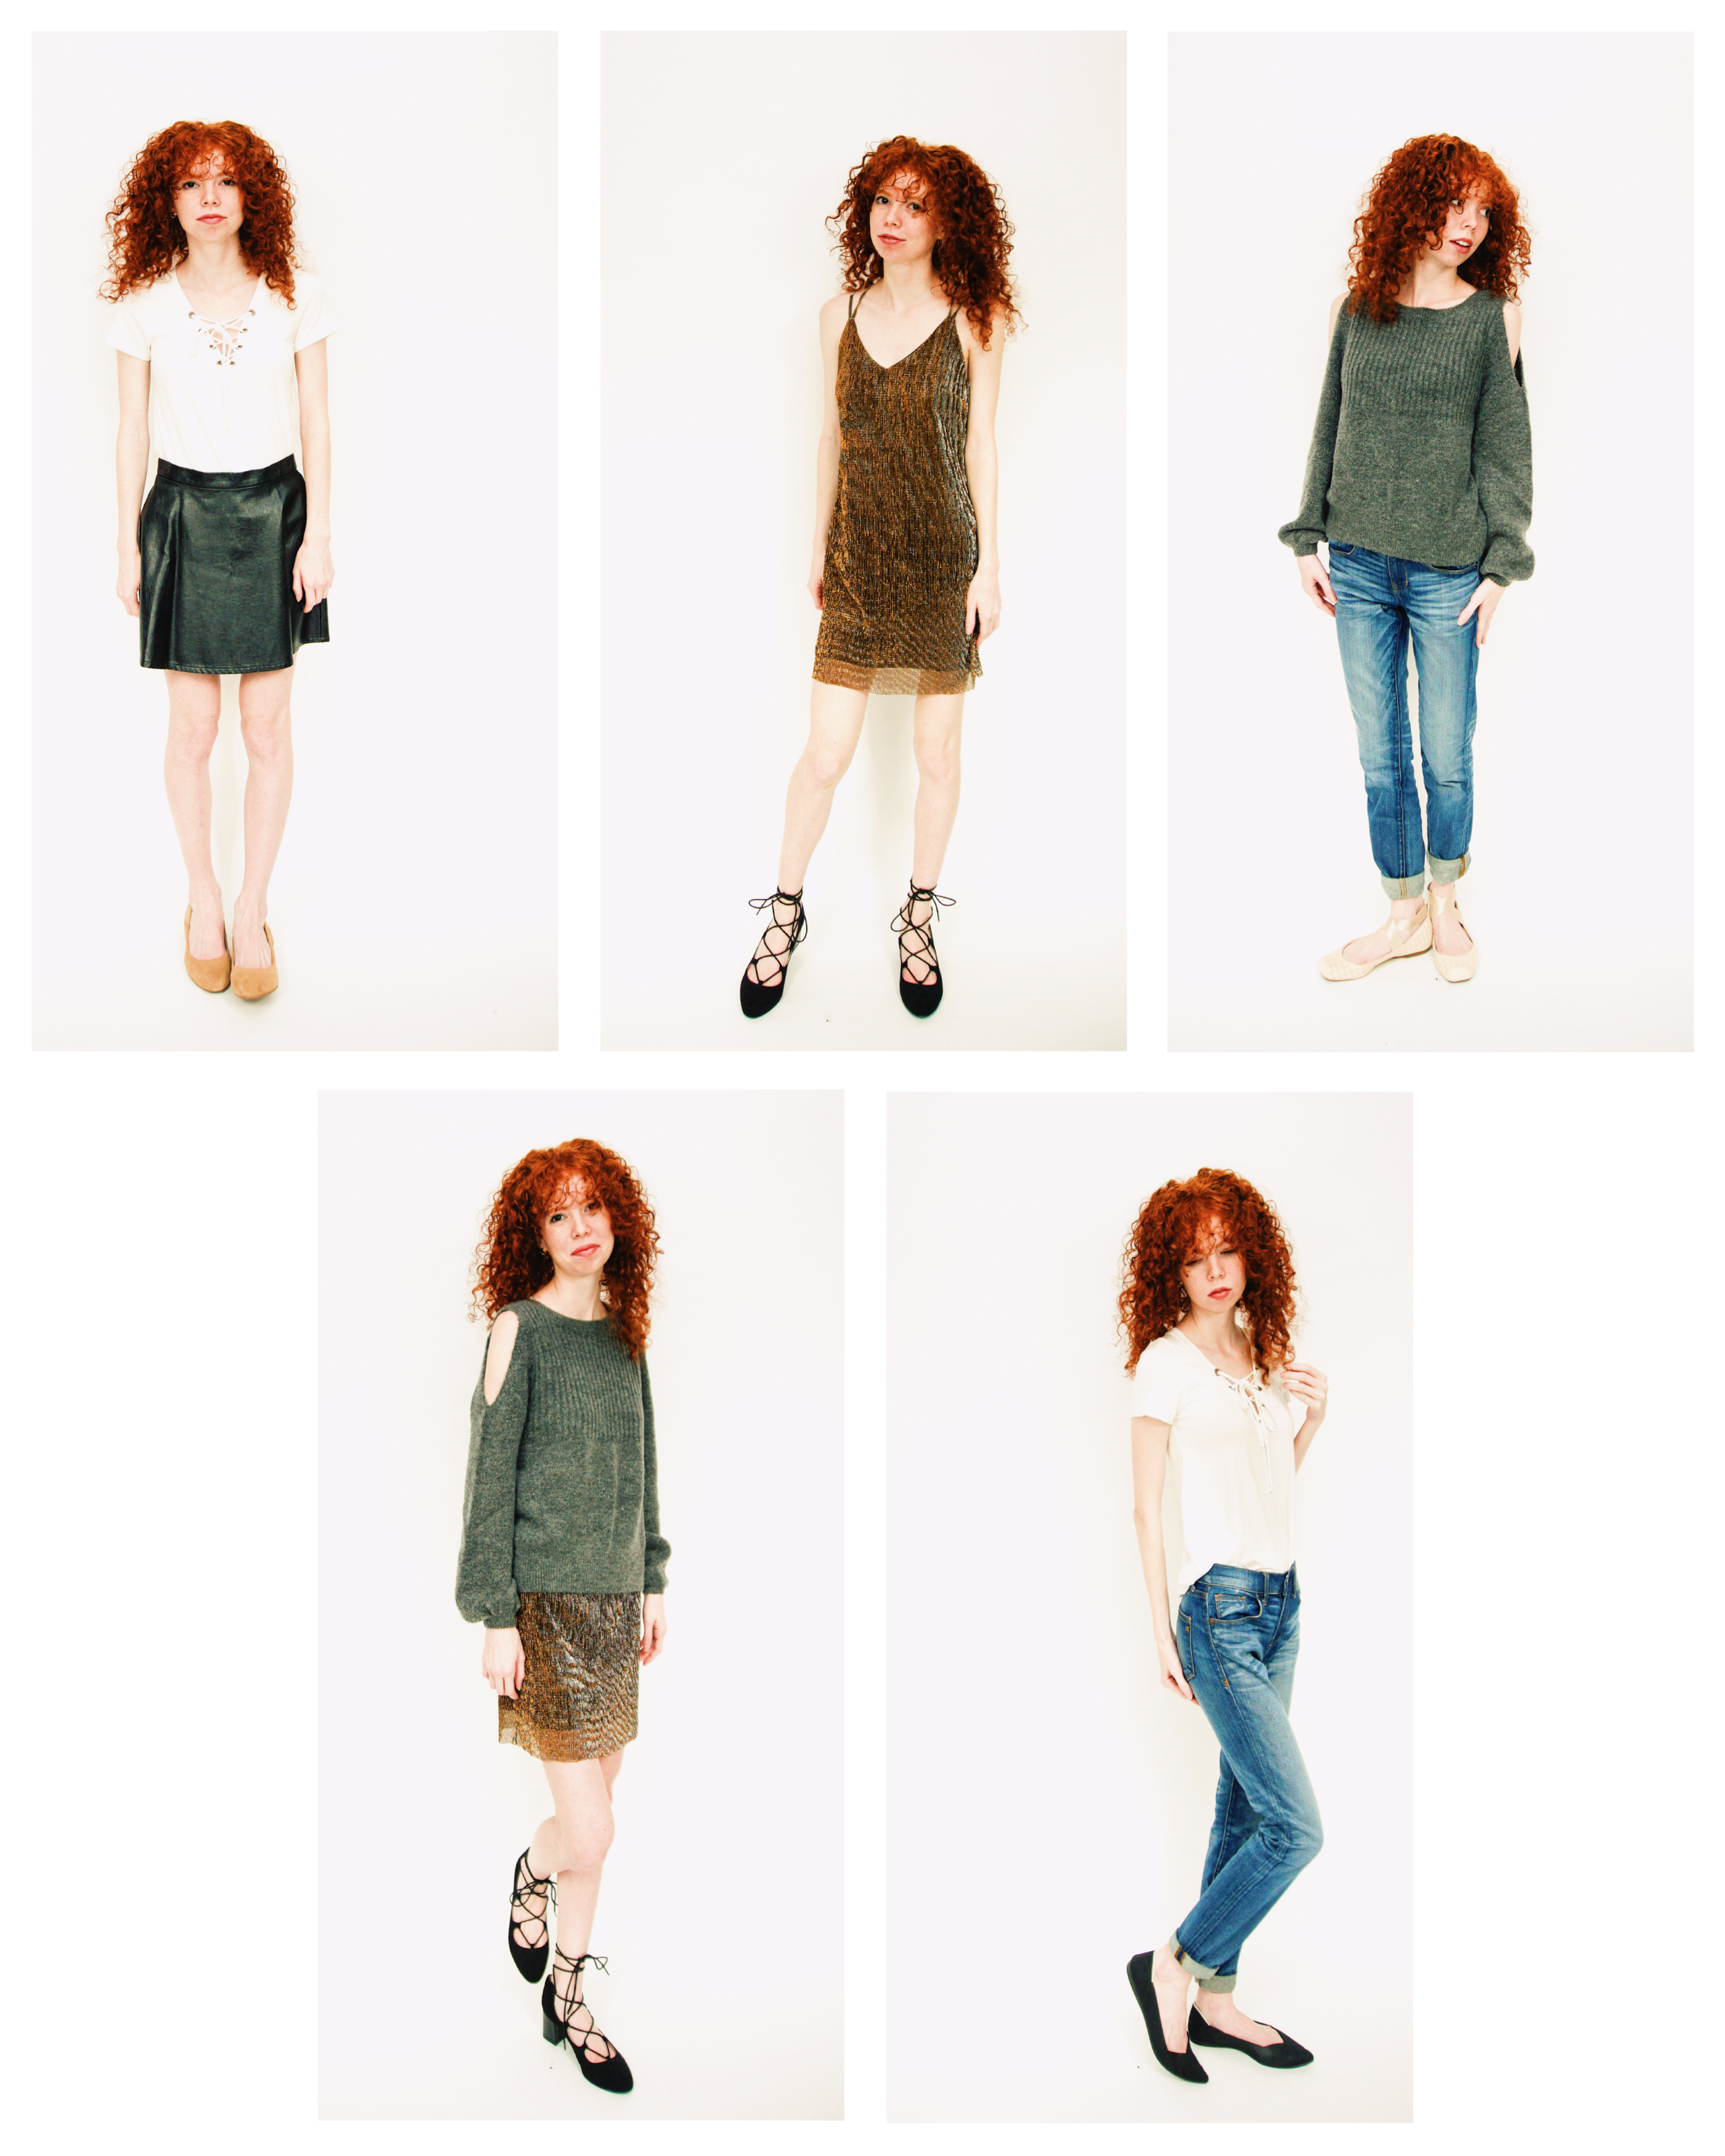 Cold shoulder sweaters and metallic dresses are perfect for taking you from Grandma's house to the Office party through Christmas and New Years! Then don't forget to relax in your jeans and tee for some downtime. You deserve it!